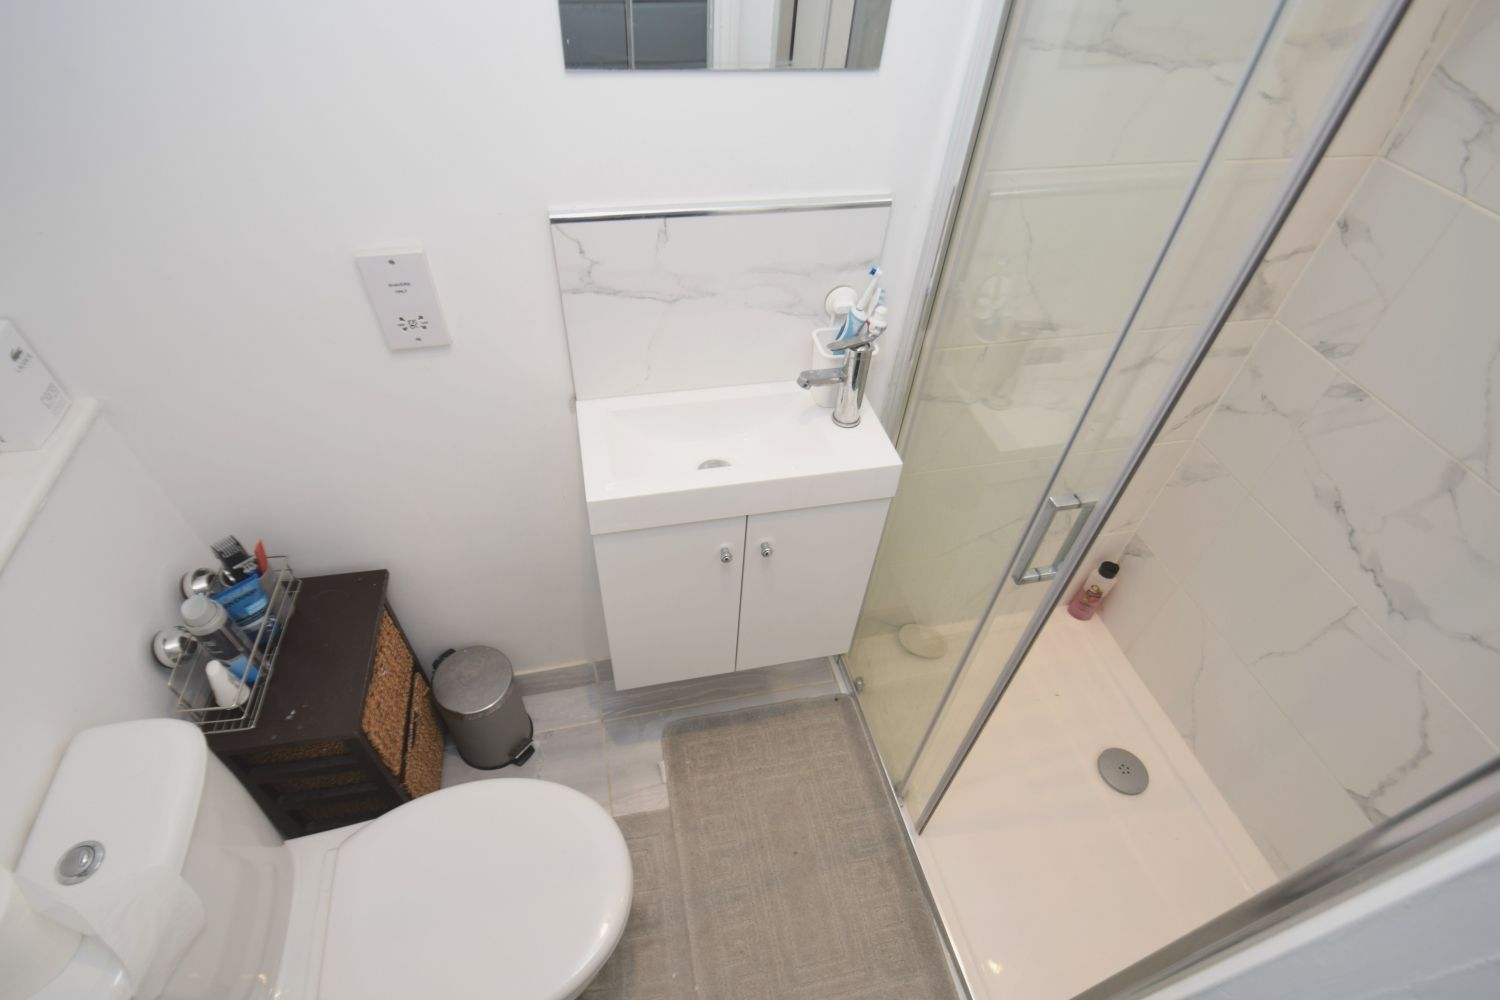 4 bed semi-detached for sale in Upland Grove, Bromsgrove, B61  - Property Image 25